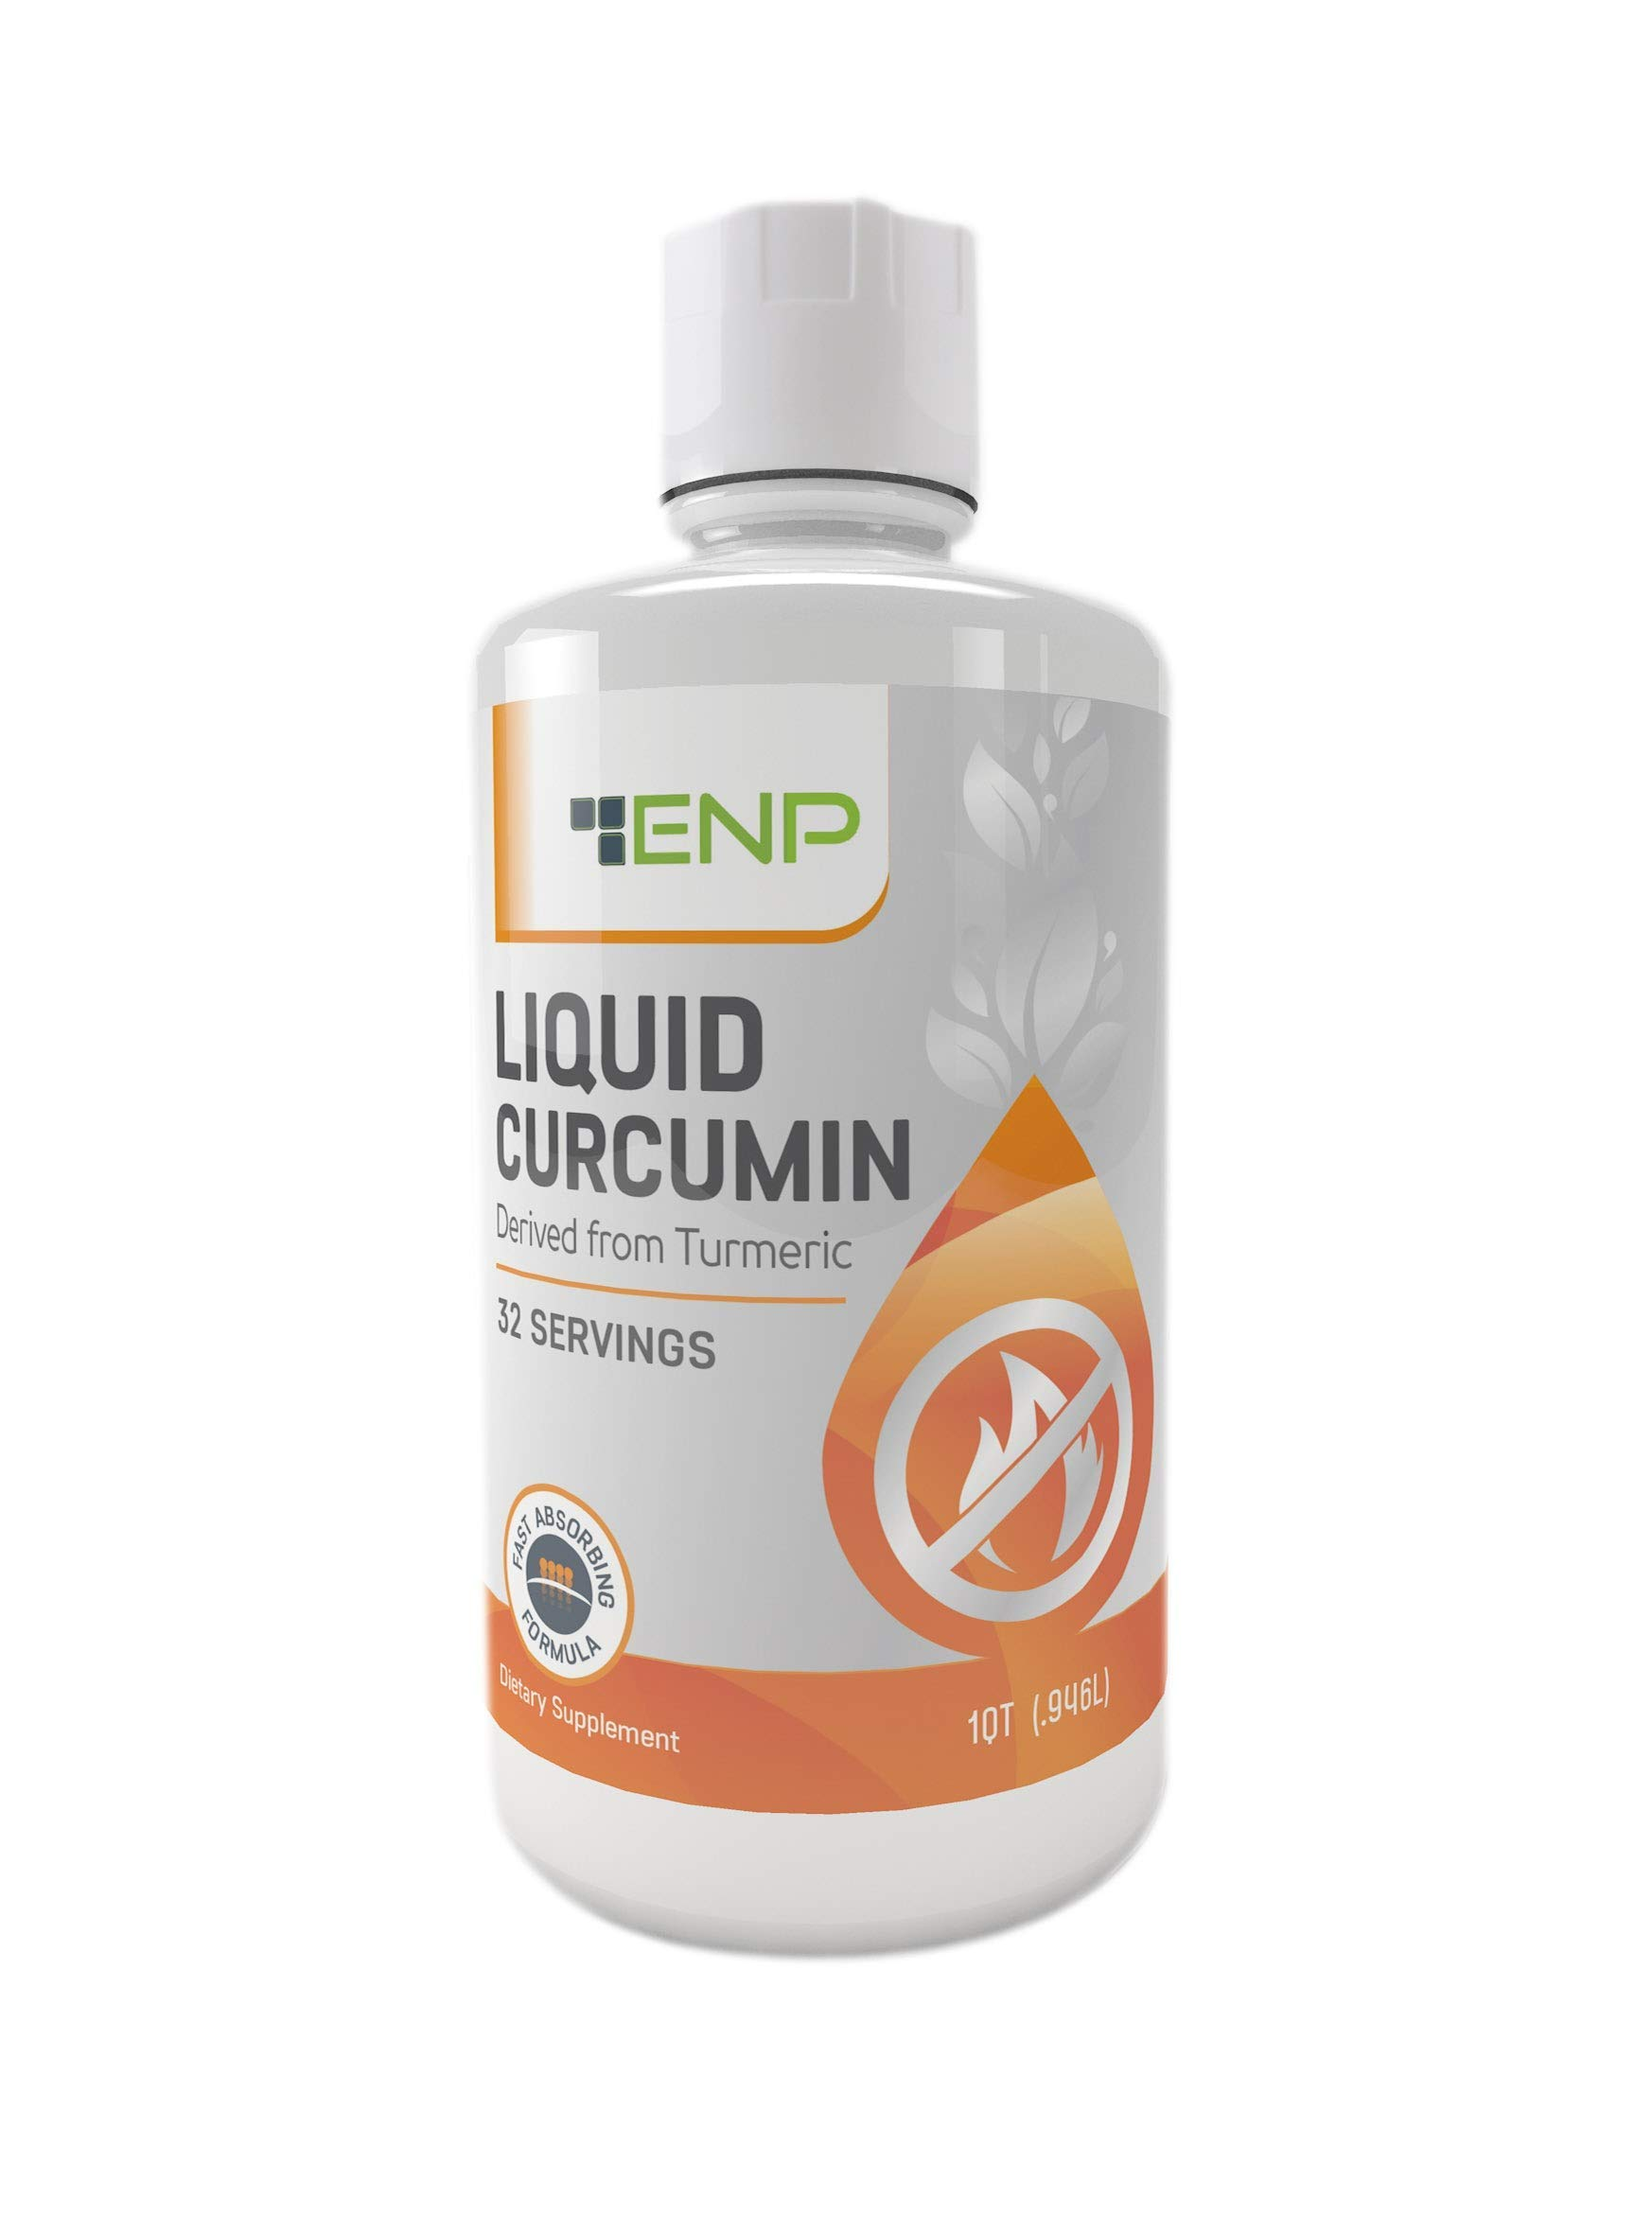 Liquid Curcumin Supplement | Derived from Turmeric | 1000 mg Highly Bioavailable Liquid Increases Absorption | Joint Pain Relief | Anti-Inflammatory, Antioxidant | Non-GMO, USA Made | 1 Month Supply ...